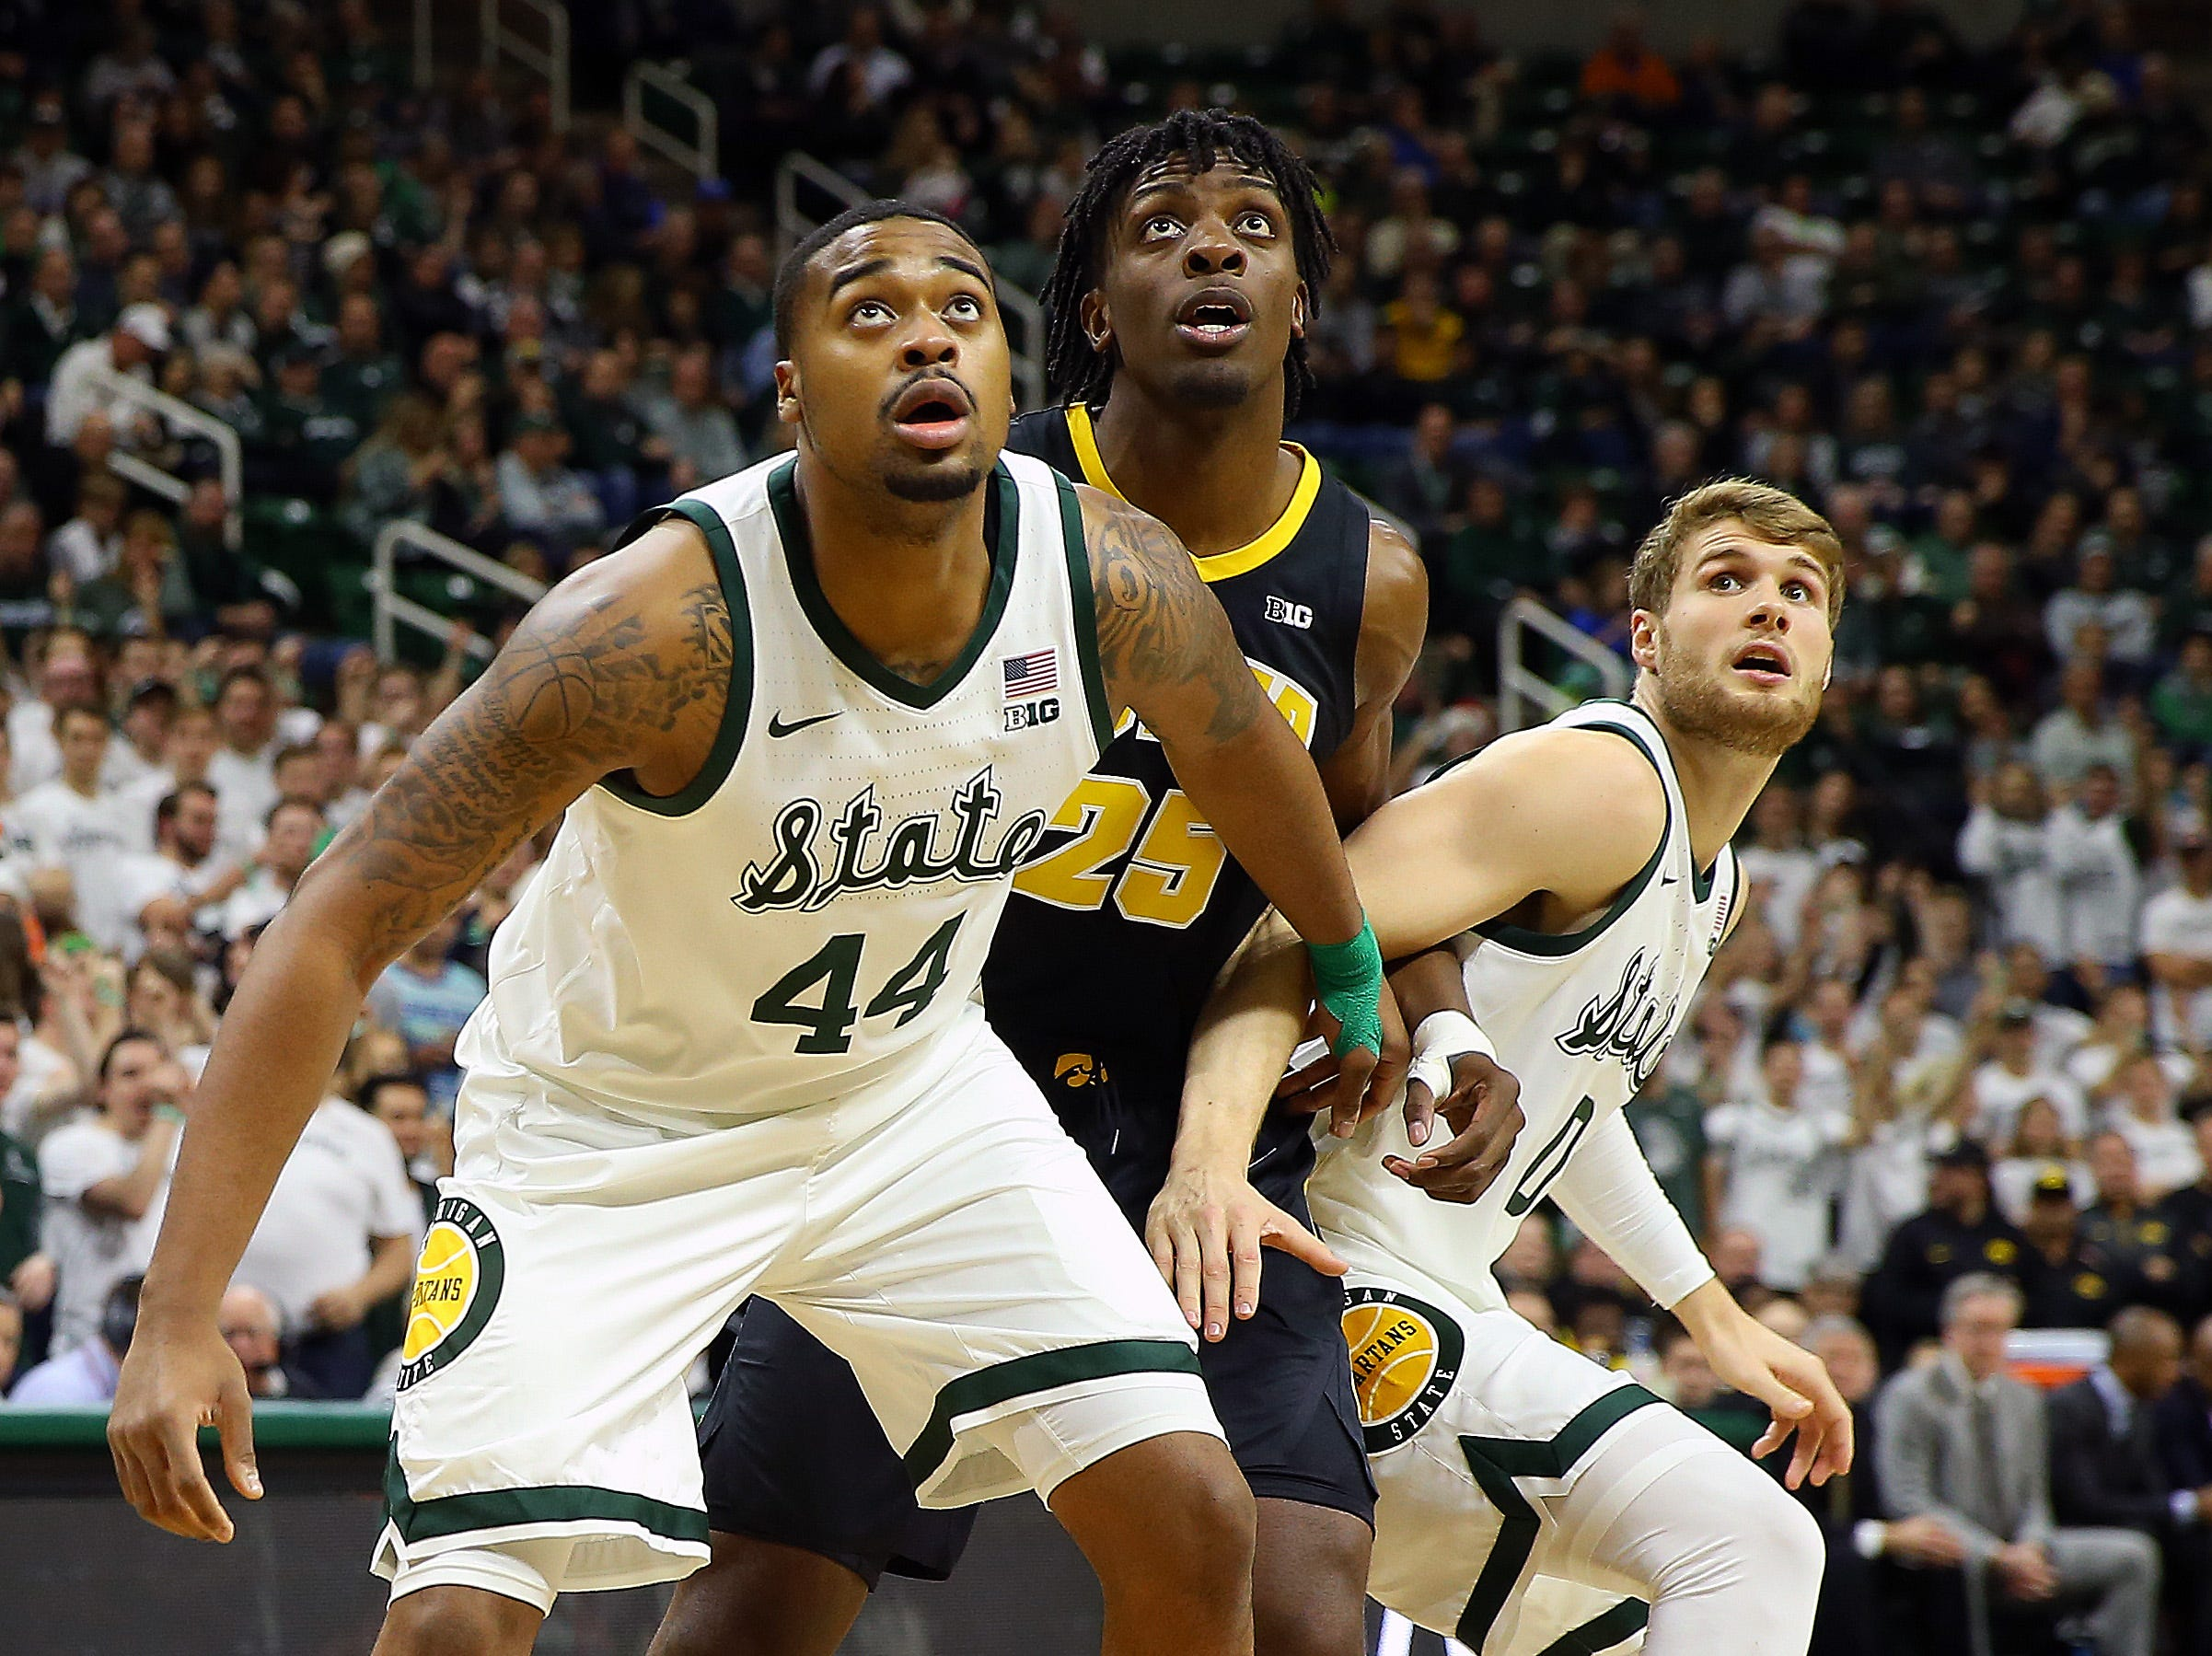 Dec 3, 2018; East Lansing, MI, USA; Michigan State Spartans forward Nick Ward (44) and Iowa Hawkeyes forward Tyler Cook (25) and Michigan State Spartans forward Kyle Ahrens (0) fight for position during the first half of a game at Breslin Center. Mandatory Credit: Mike Carter-USA TODAY Sports